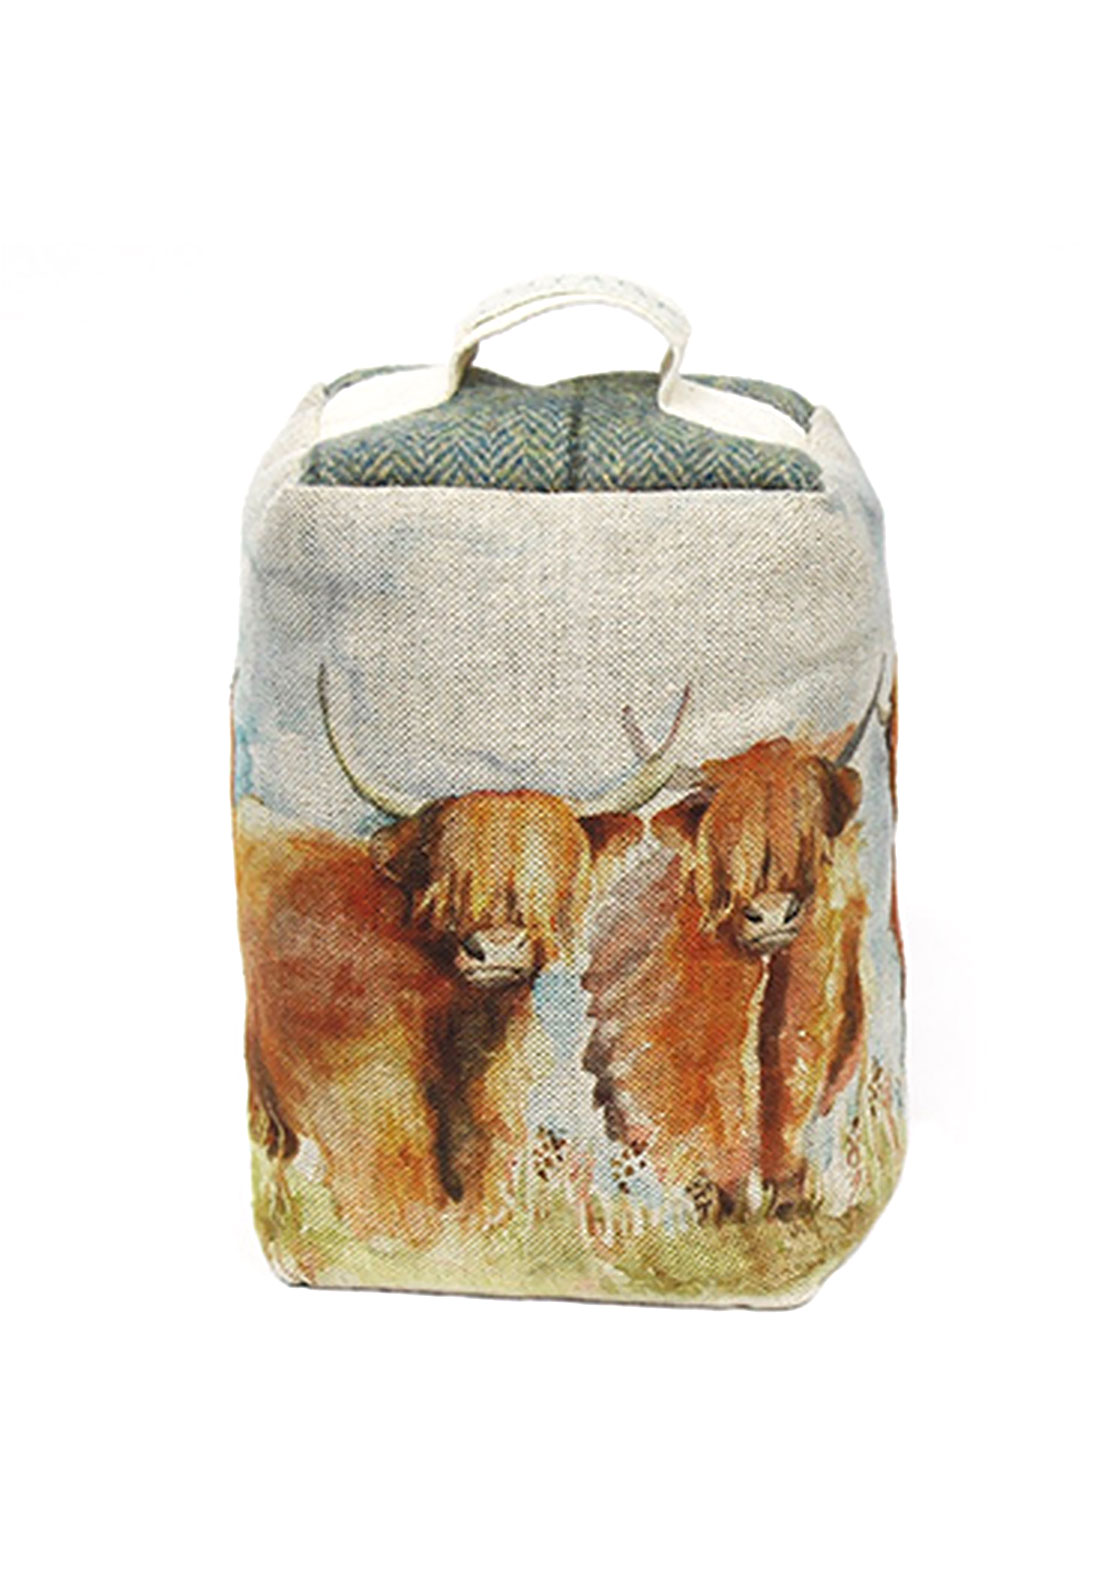 Voyage Maison Highland Cattle Door Stop, Multi